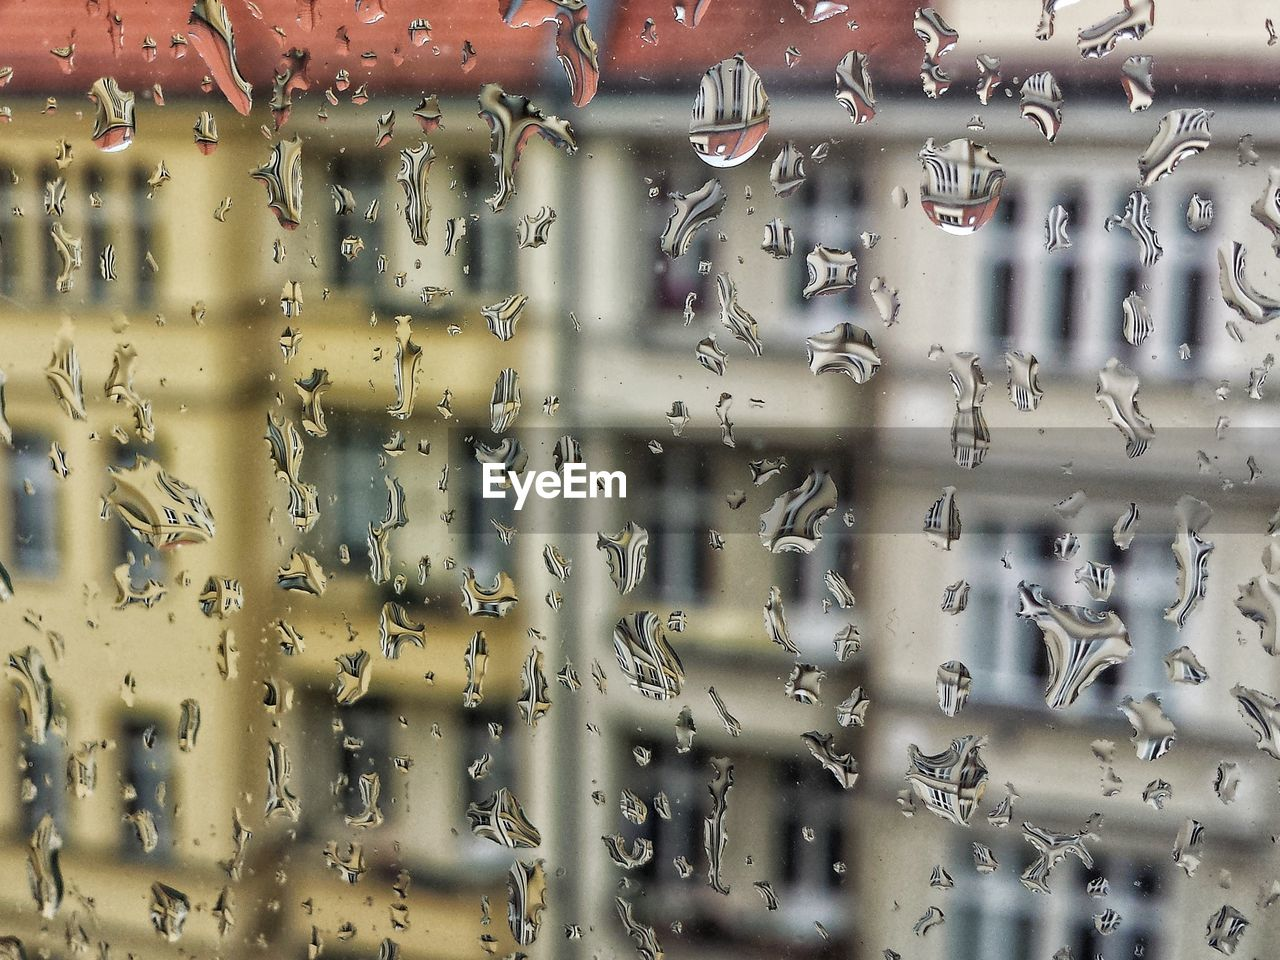 full frame, backgrounds, glass - material, no people, drop, water, close-up, wet, window, day, indoors, rain, transportation, mode of transportation, architecture, focus on foreground, pattern, transparent, rainy season, raindrop